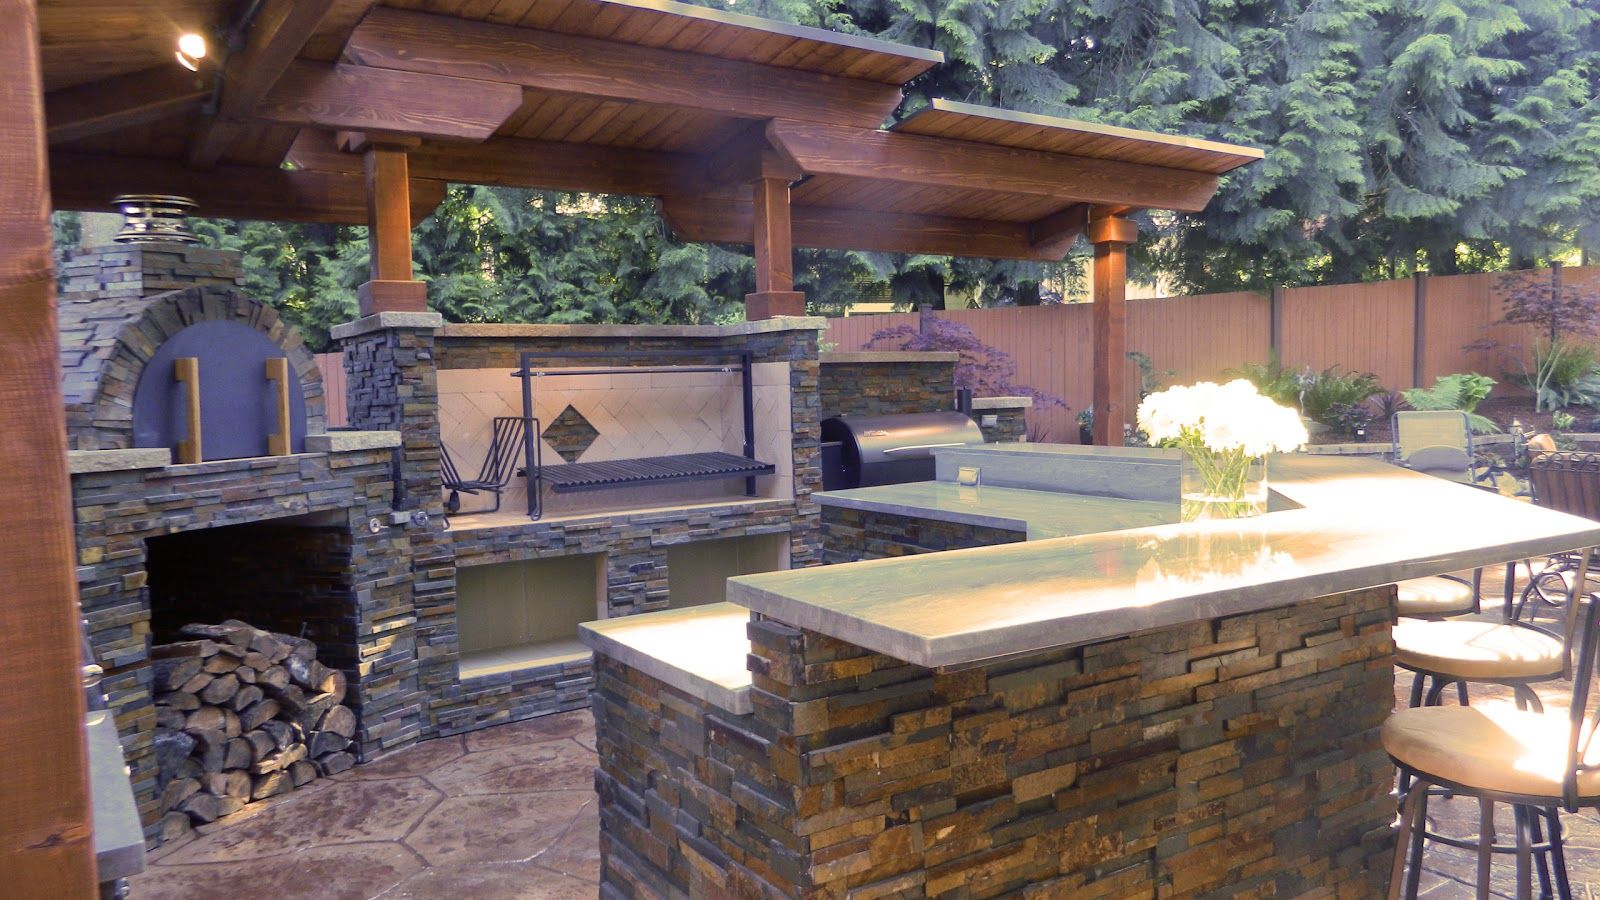 Built In Grill And Smoker Outside Bar | Outdoor Kitchen With Argentinian  Grill, BrickWood Pizza Part 43